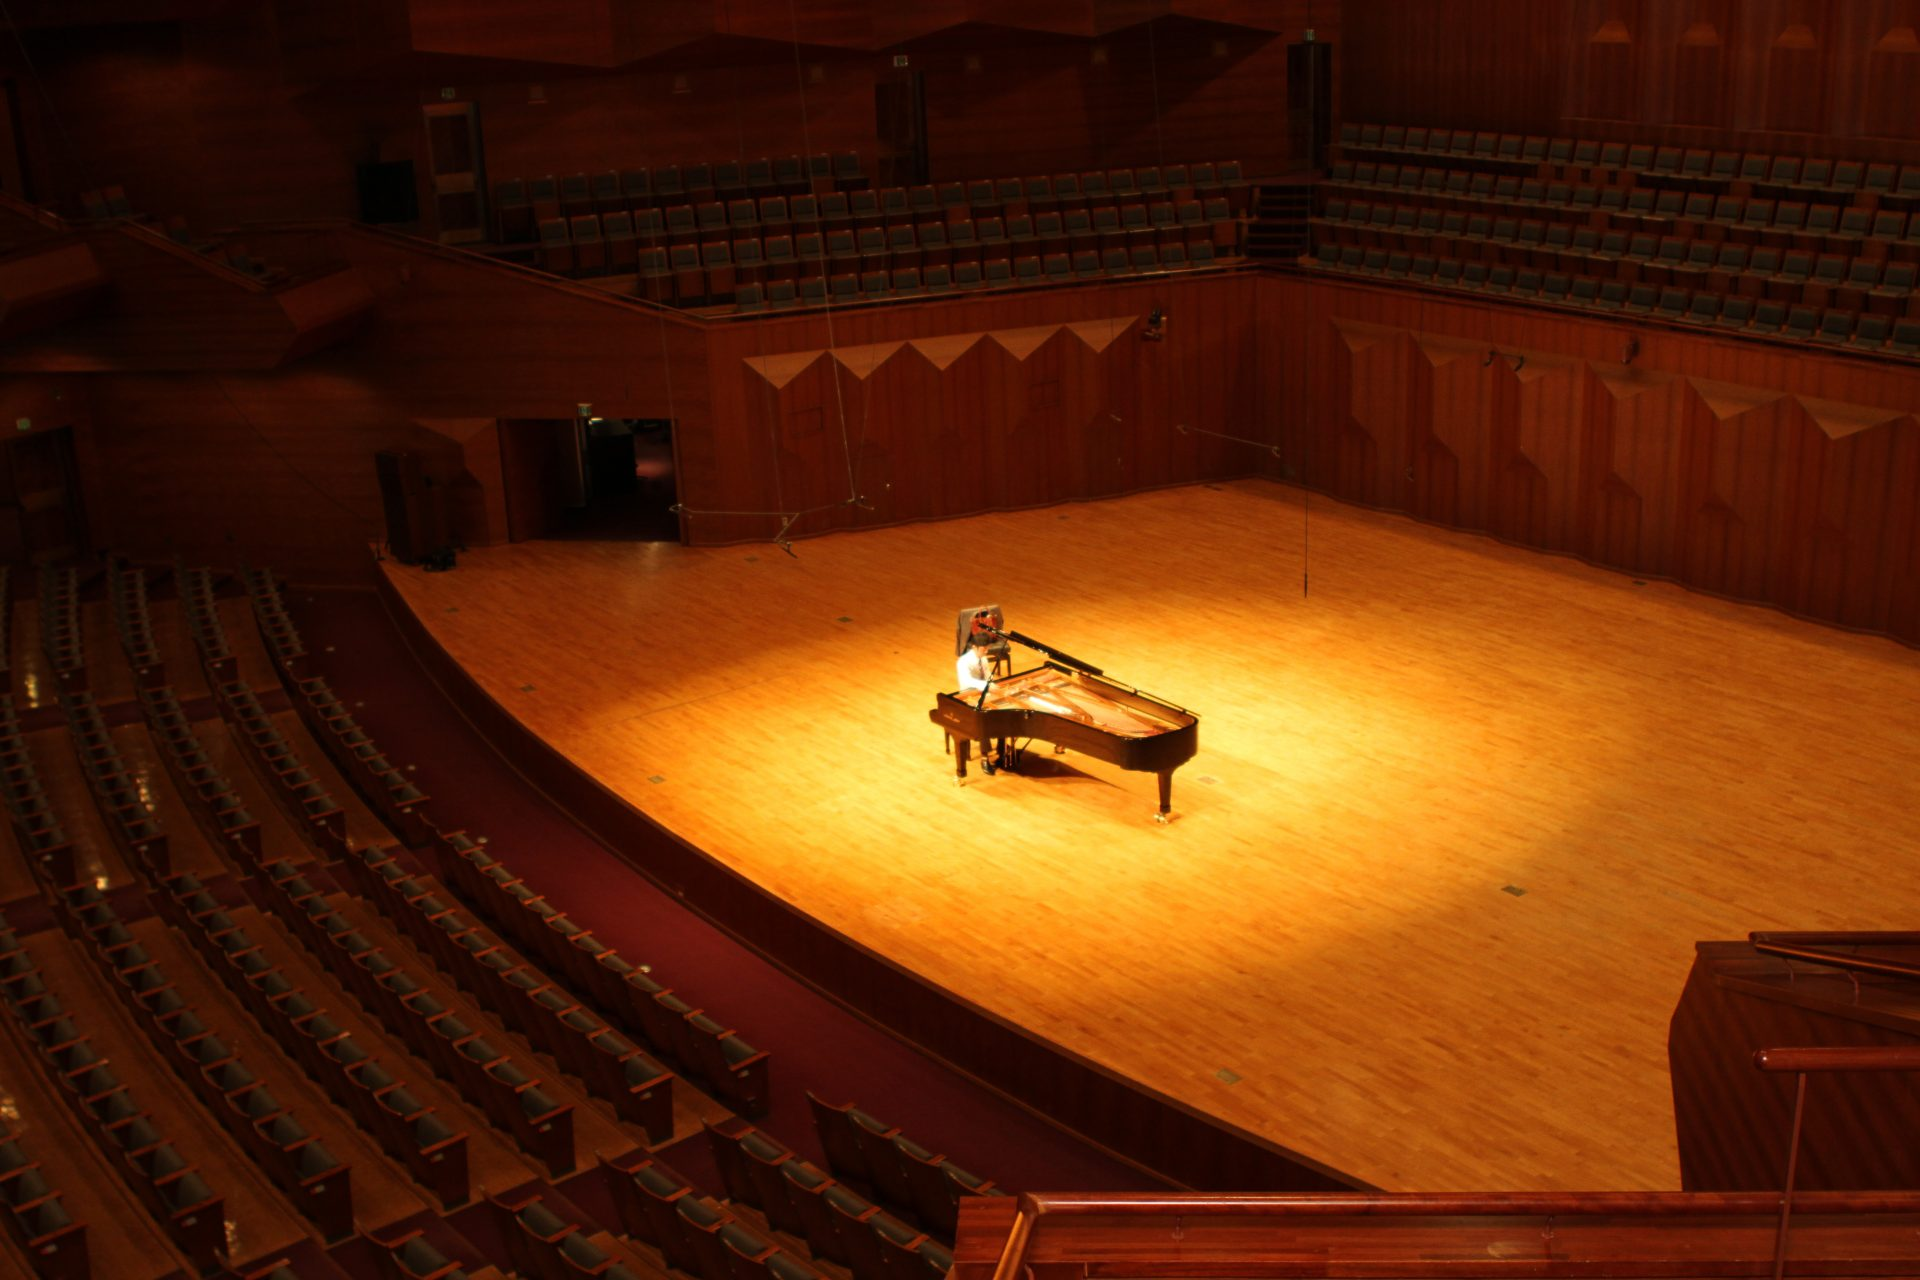 korea piano technicians association